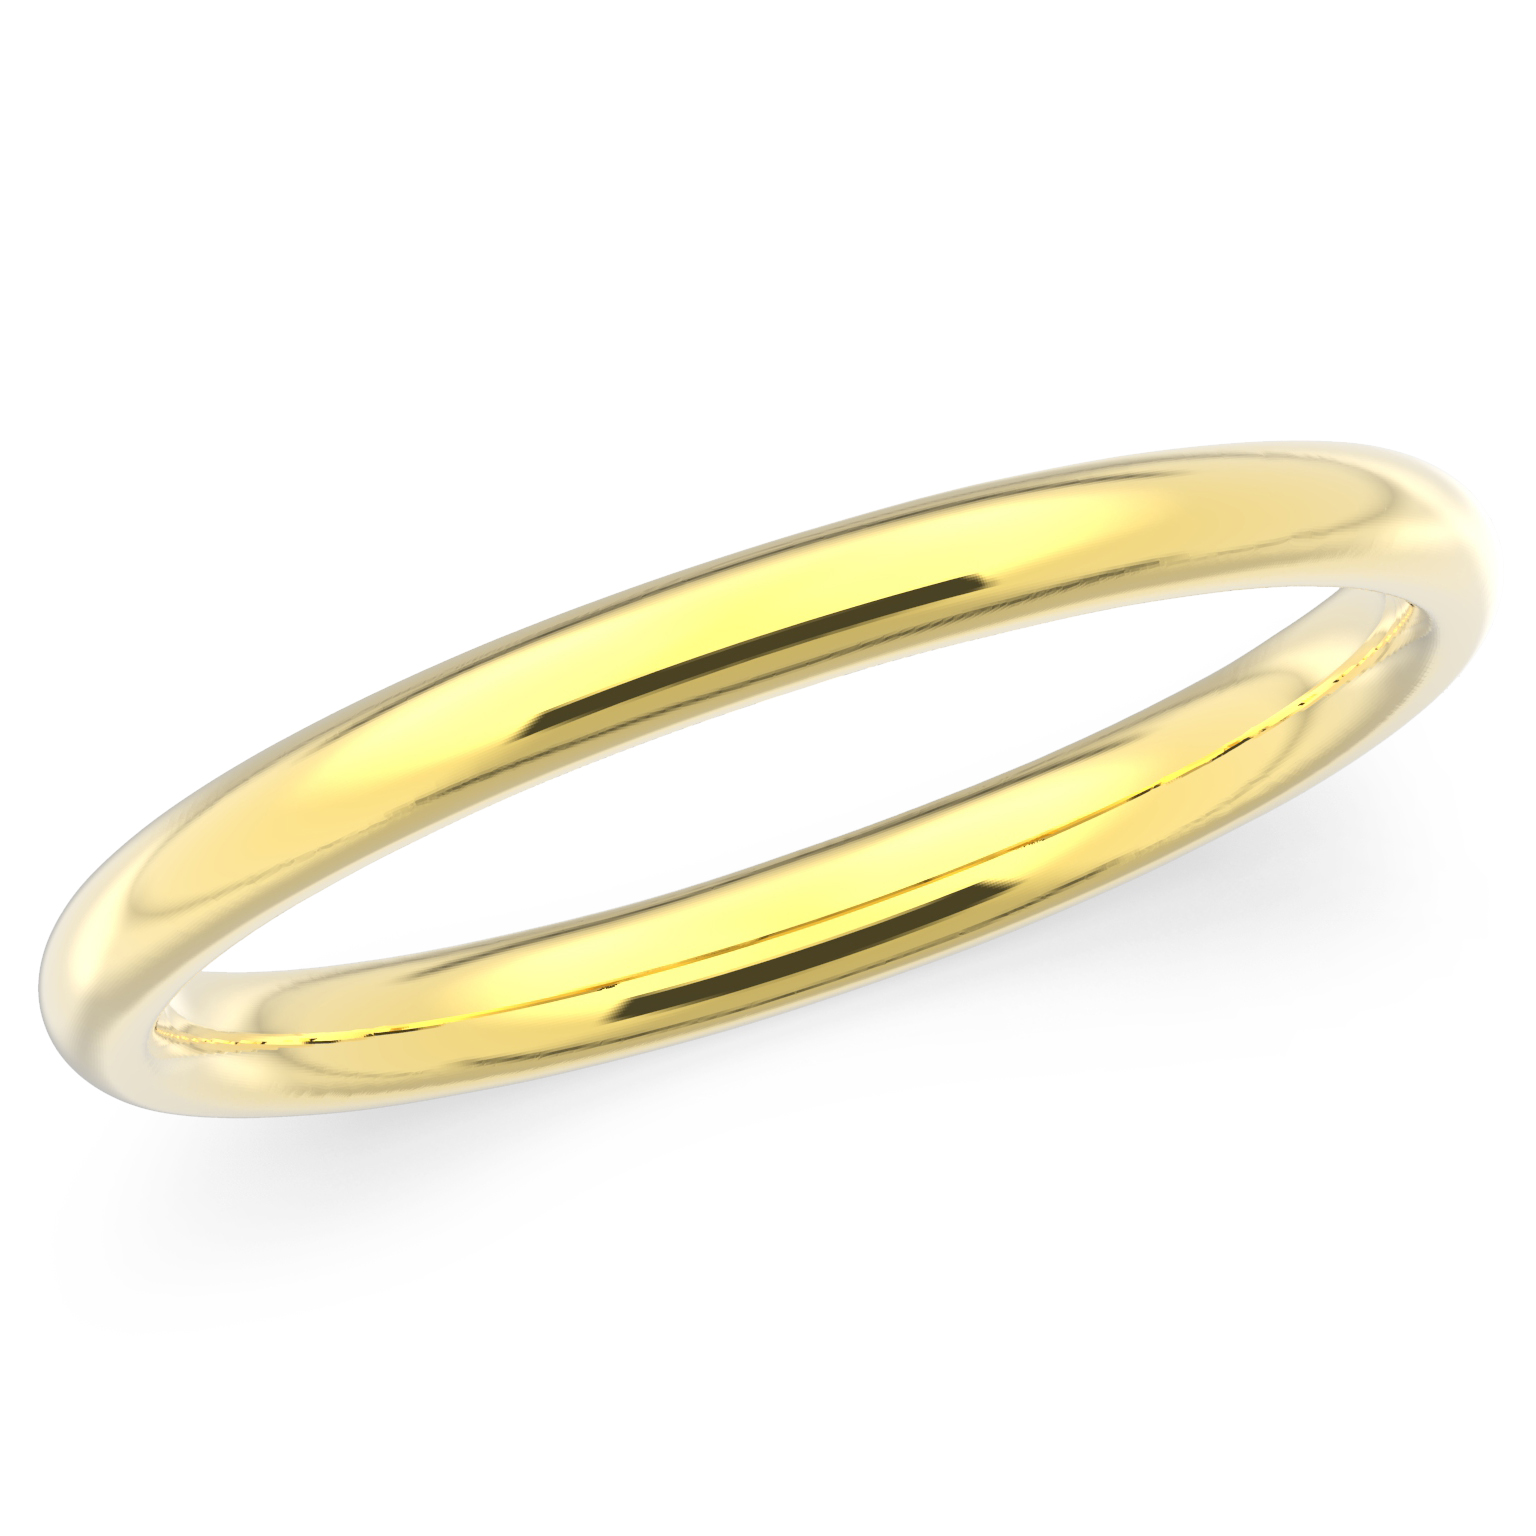 14K Gold Sterling Silver Wedding Band Unisex Ring Wedding Ring 10K Band Ring Keepsake Ring Dates Ring Mothers Ring mens band ring